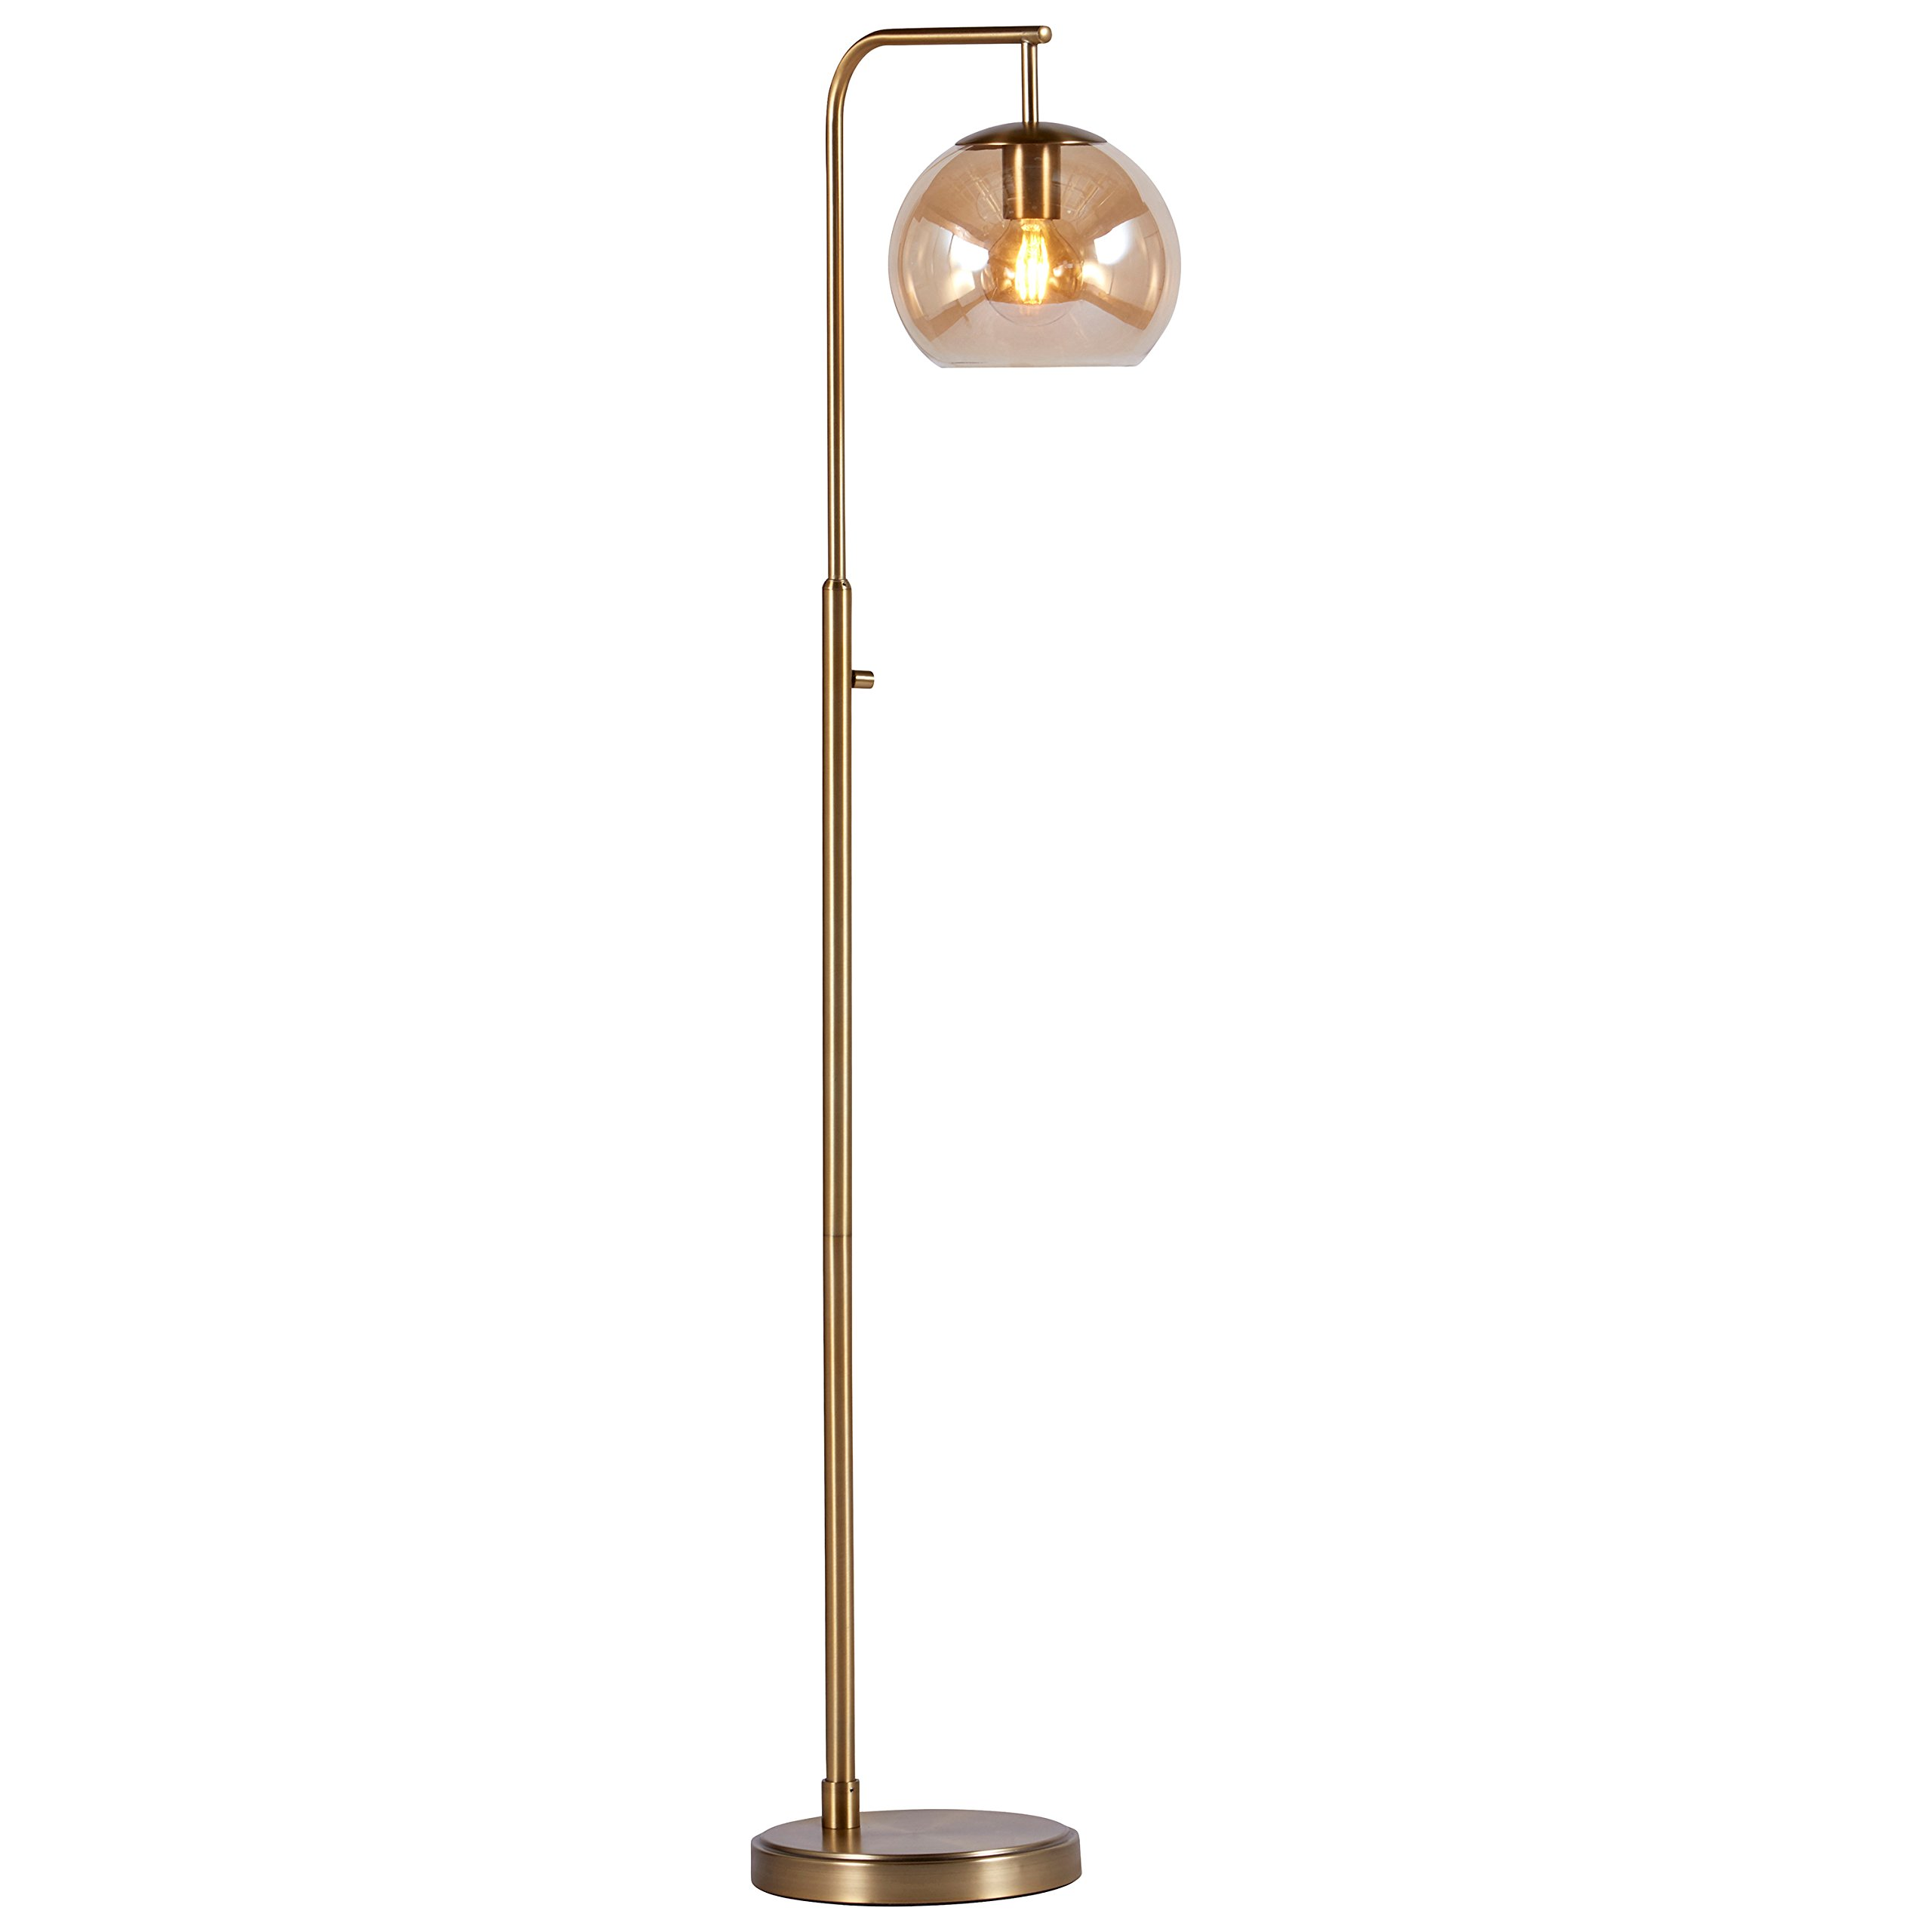 Rivet Hudson Mid-Century Brass Floor Lamp, 58.5''H, With Bulb, Tinted Glass Globe by Rivet